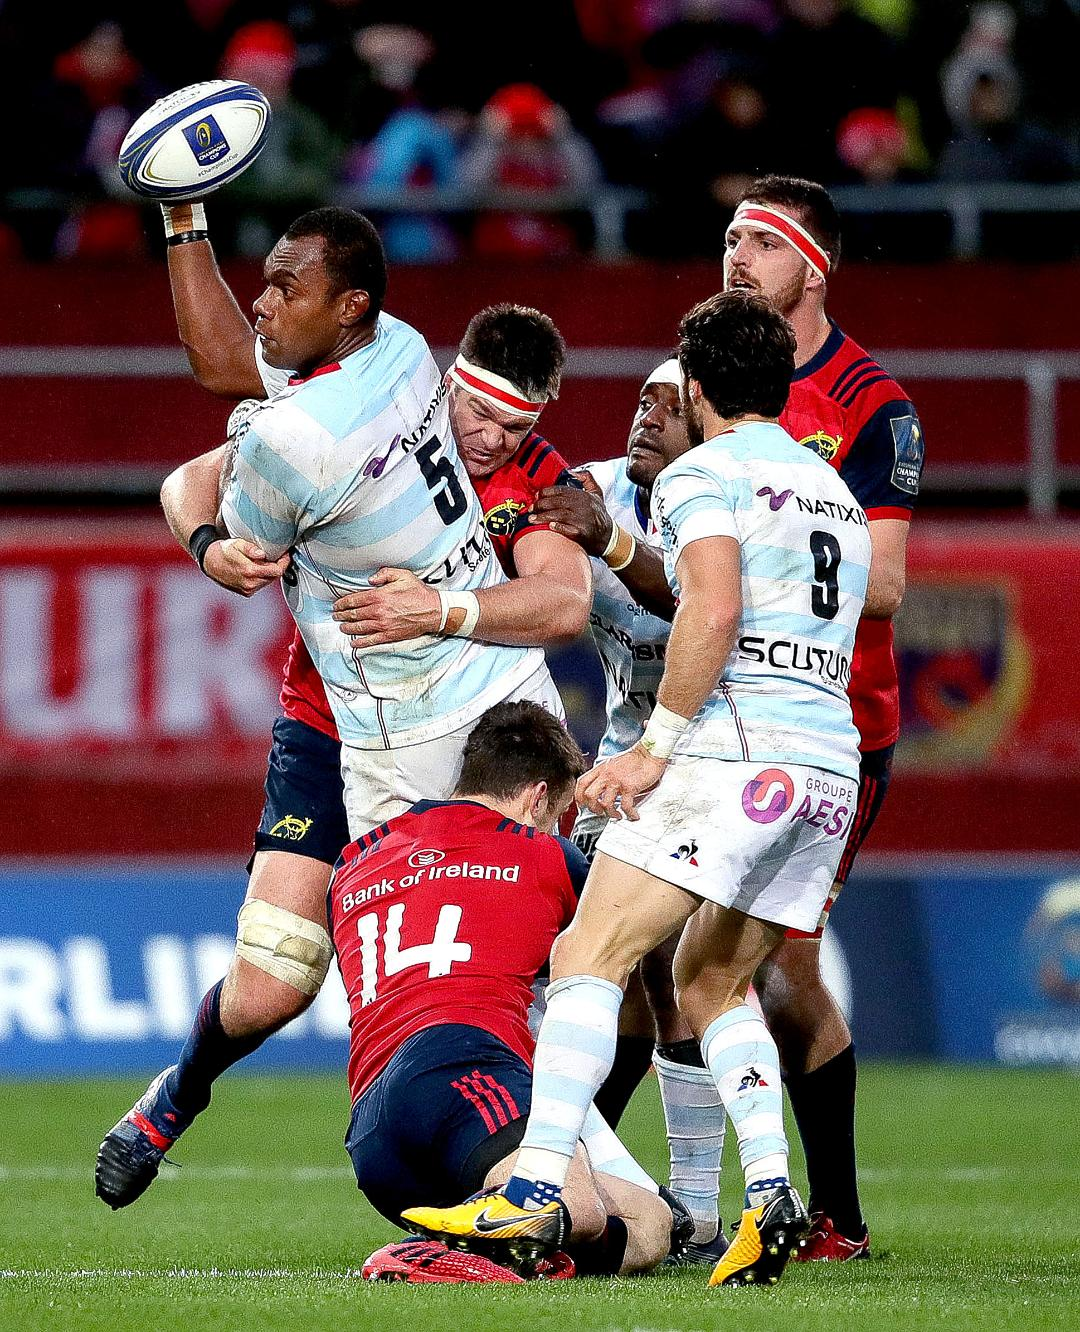 Racing 92 v Munster - Match Preview Header Photo